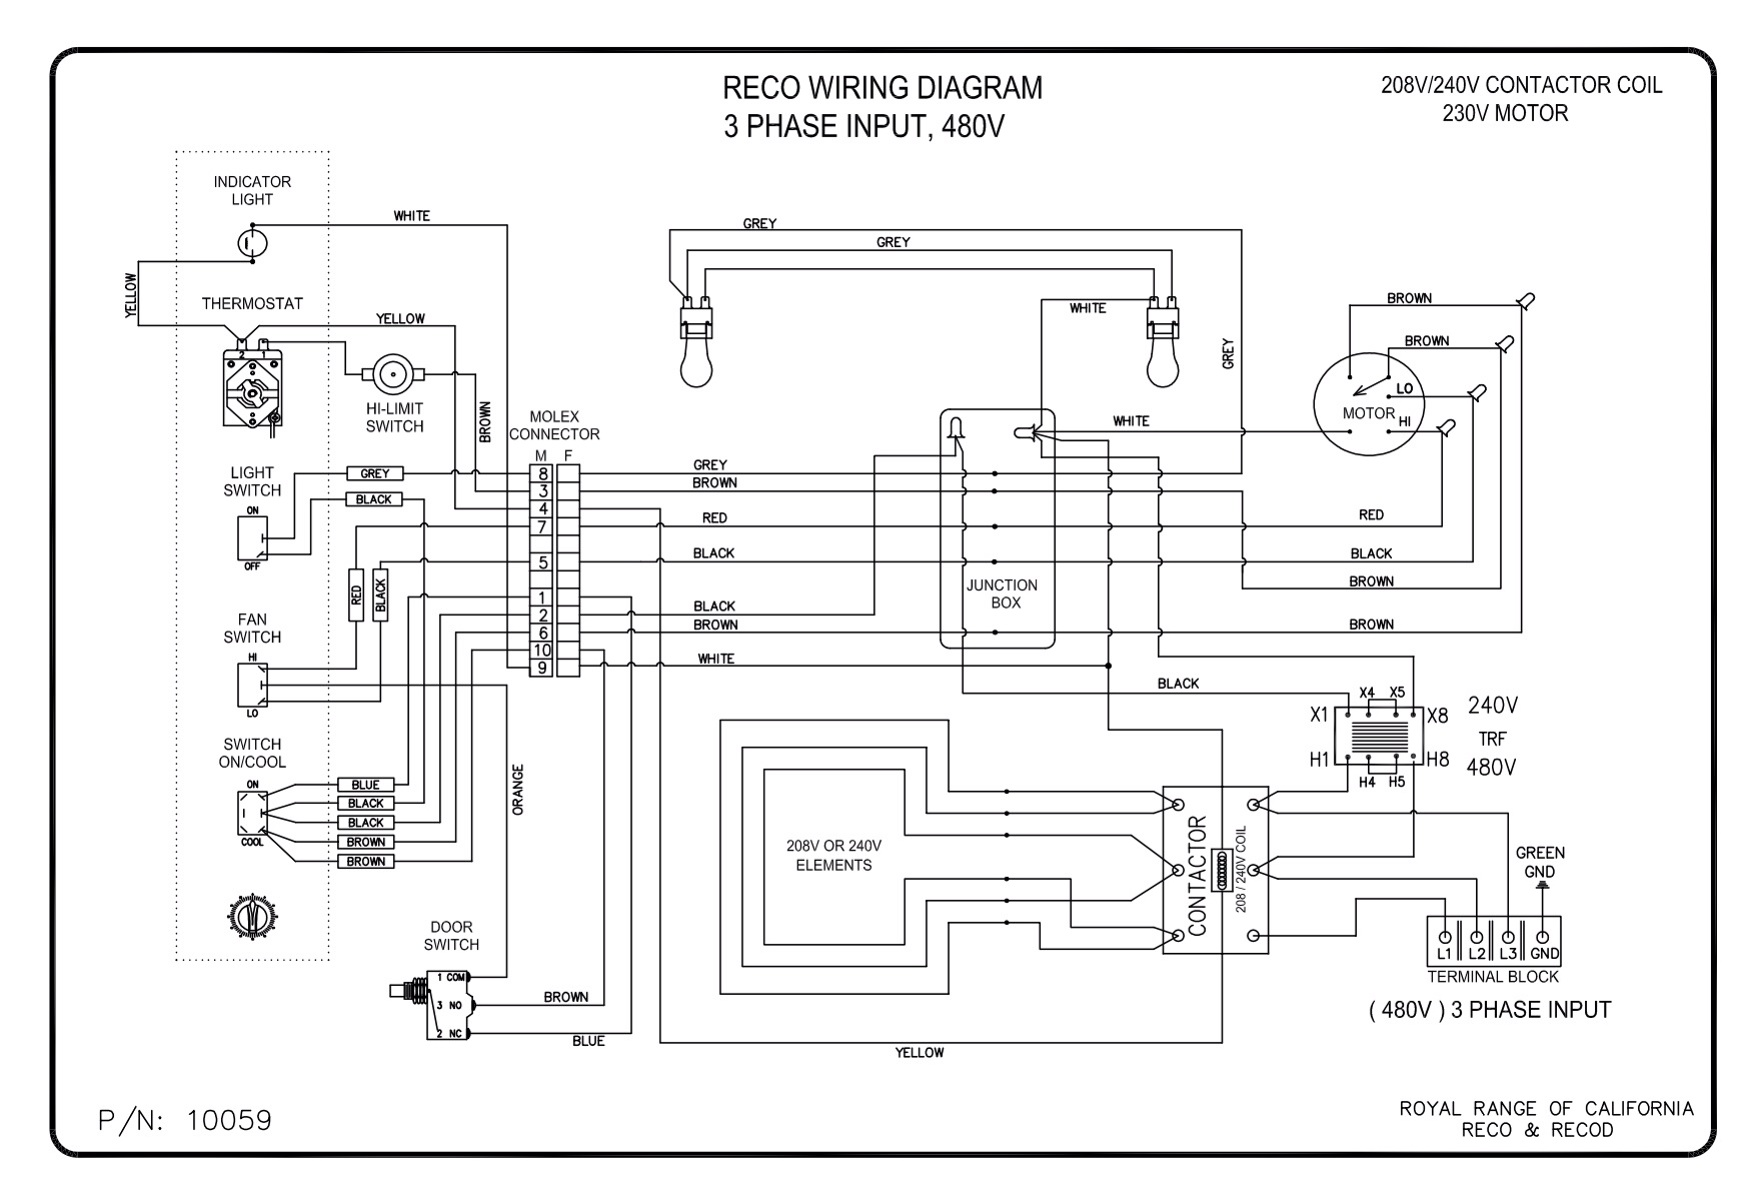 wiring diagrams royal range of california rh royalranges com 208 Volt Lighting Wiring Diagram 120 208 Volt Wiring Diagram